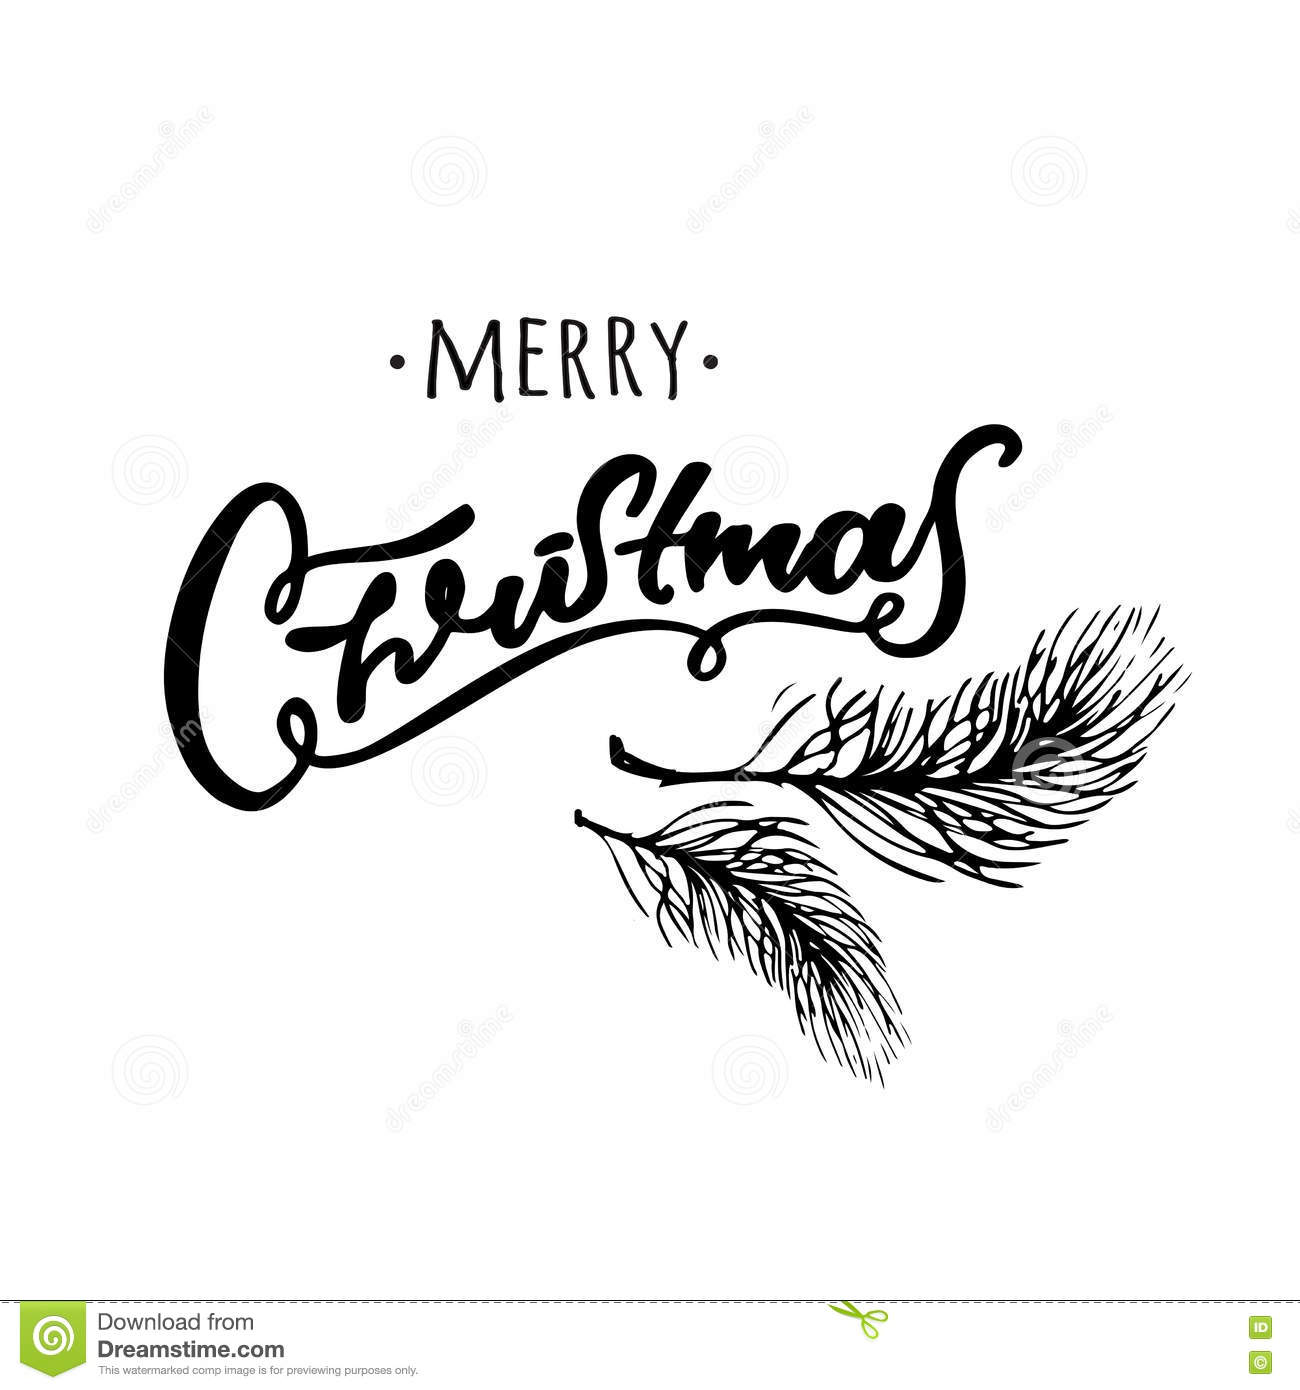 Merry Christmas Images Black And White.Merry Christmas Hand Drawn Design Black And White Hand